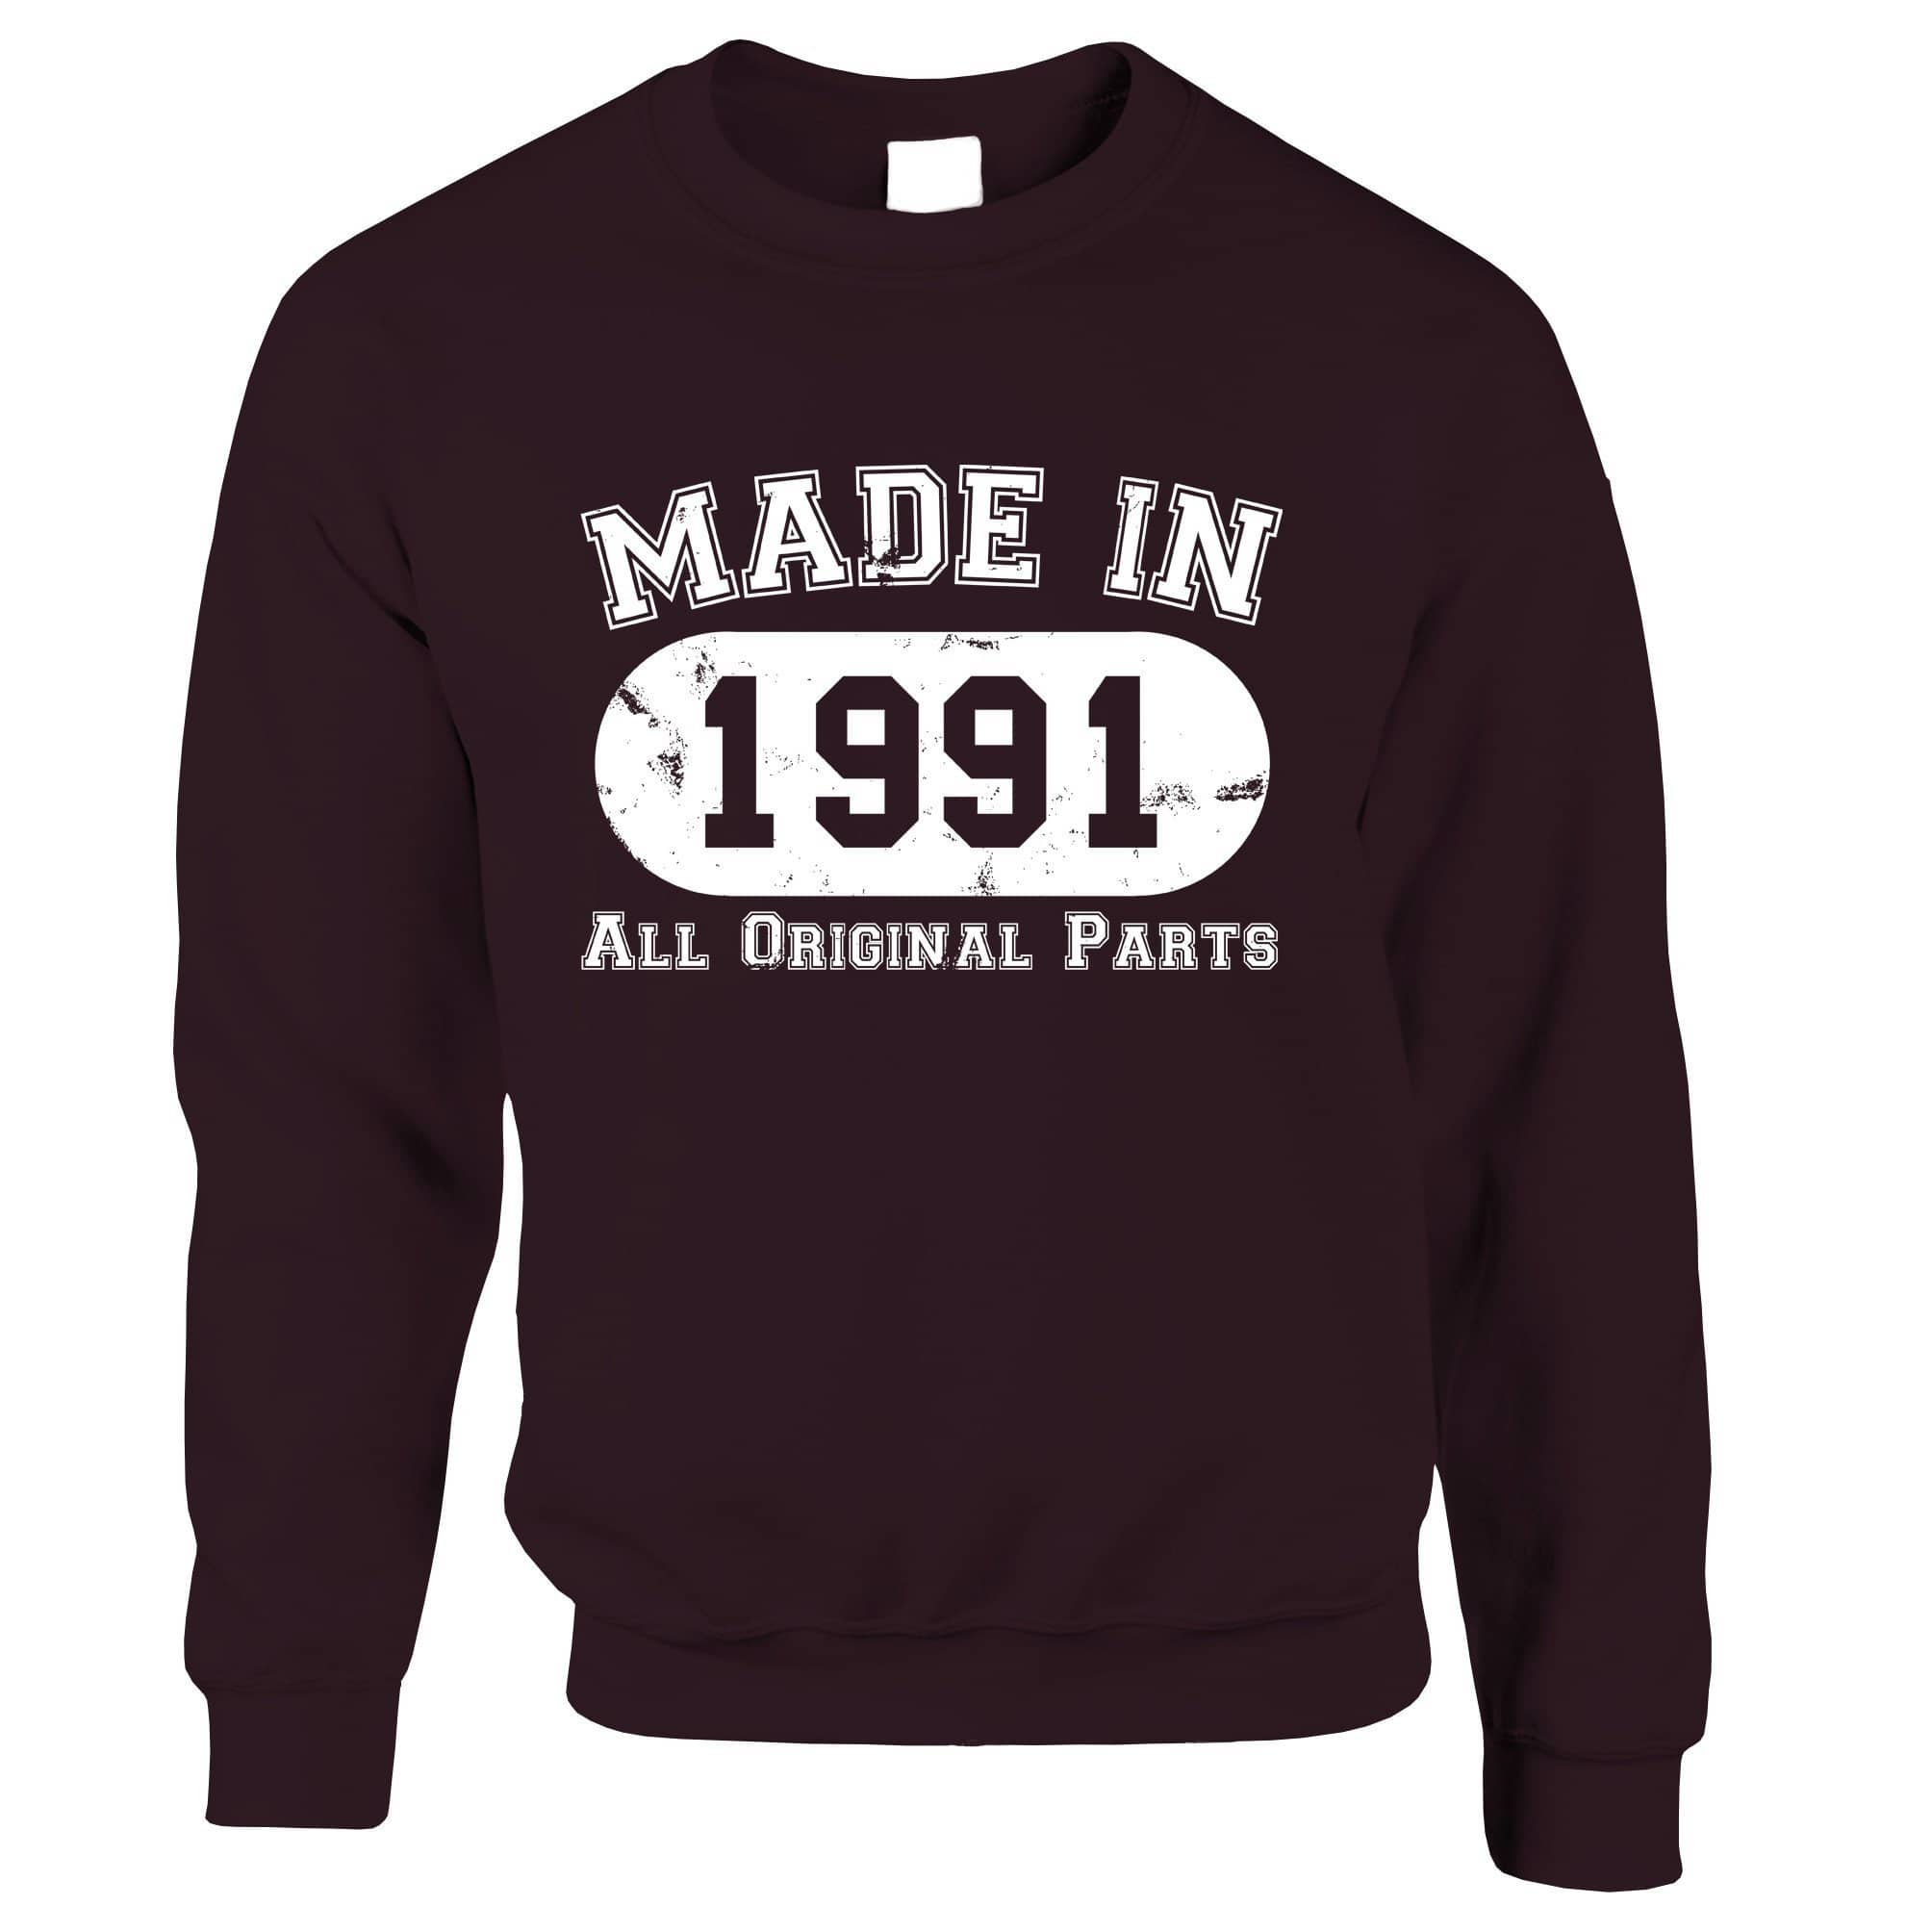 Made in 1991 All Original Parts Sweatshirt Jumper [Distressed]